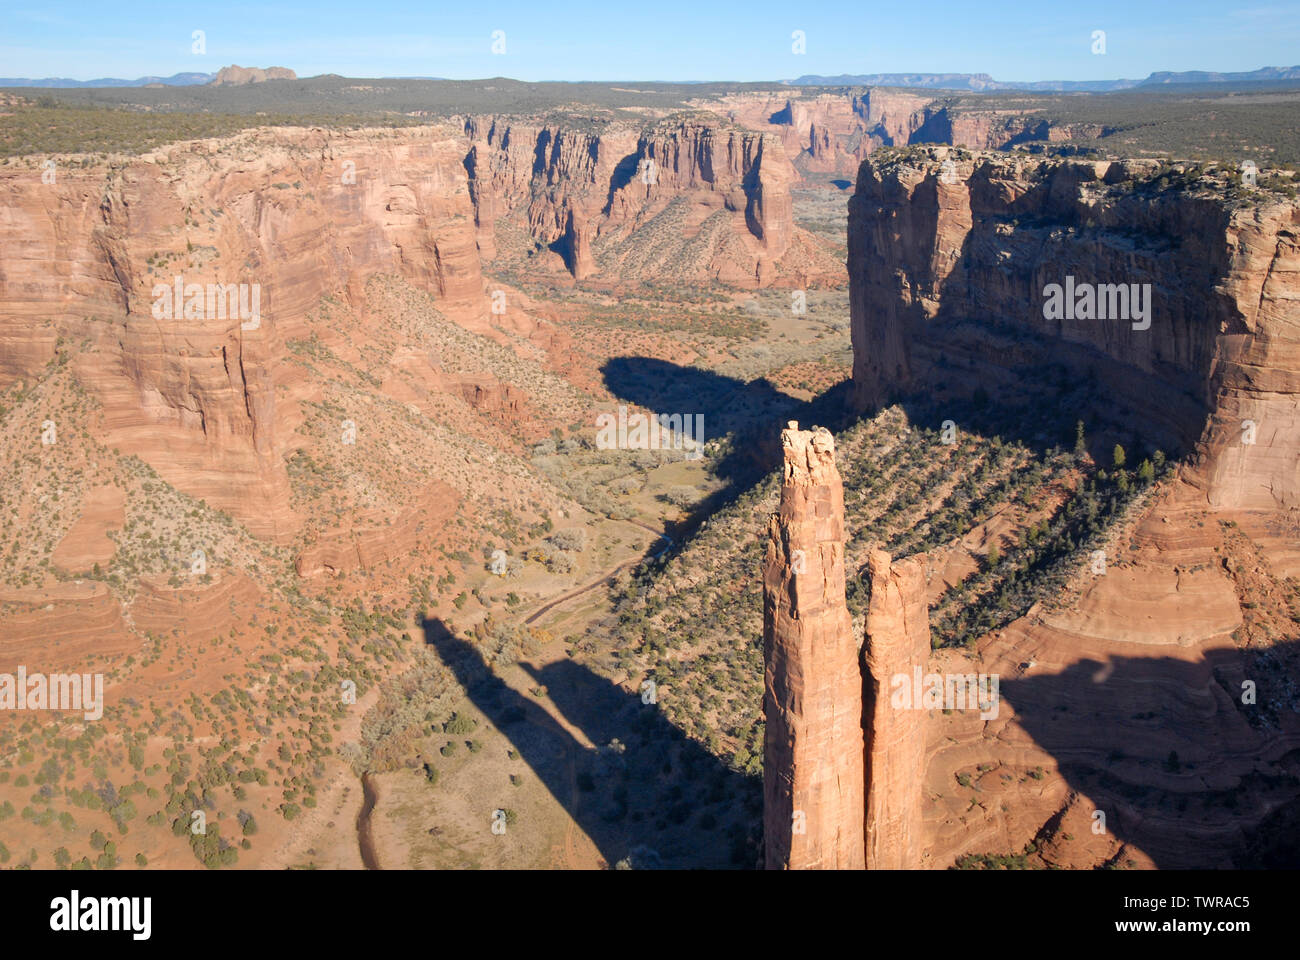 Helicopter view of Spider Rock at Canyon de Chelly National Monument near Chinle, Arizona (Navajo Nation), USA. - Stock Image